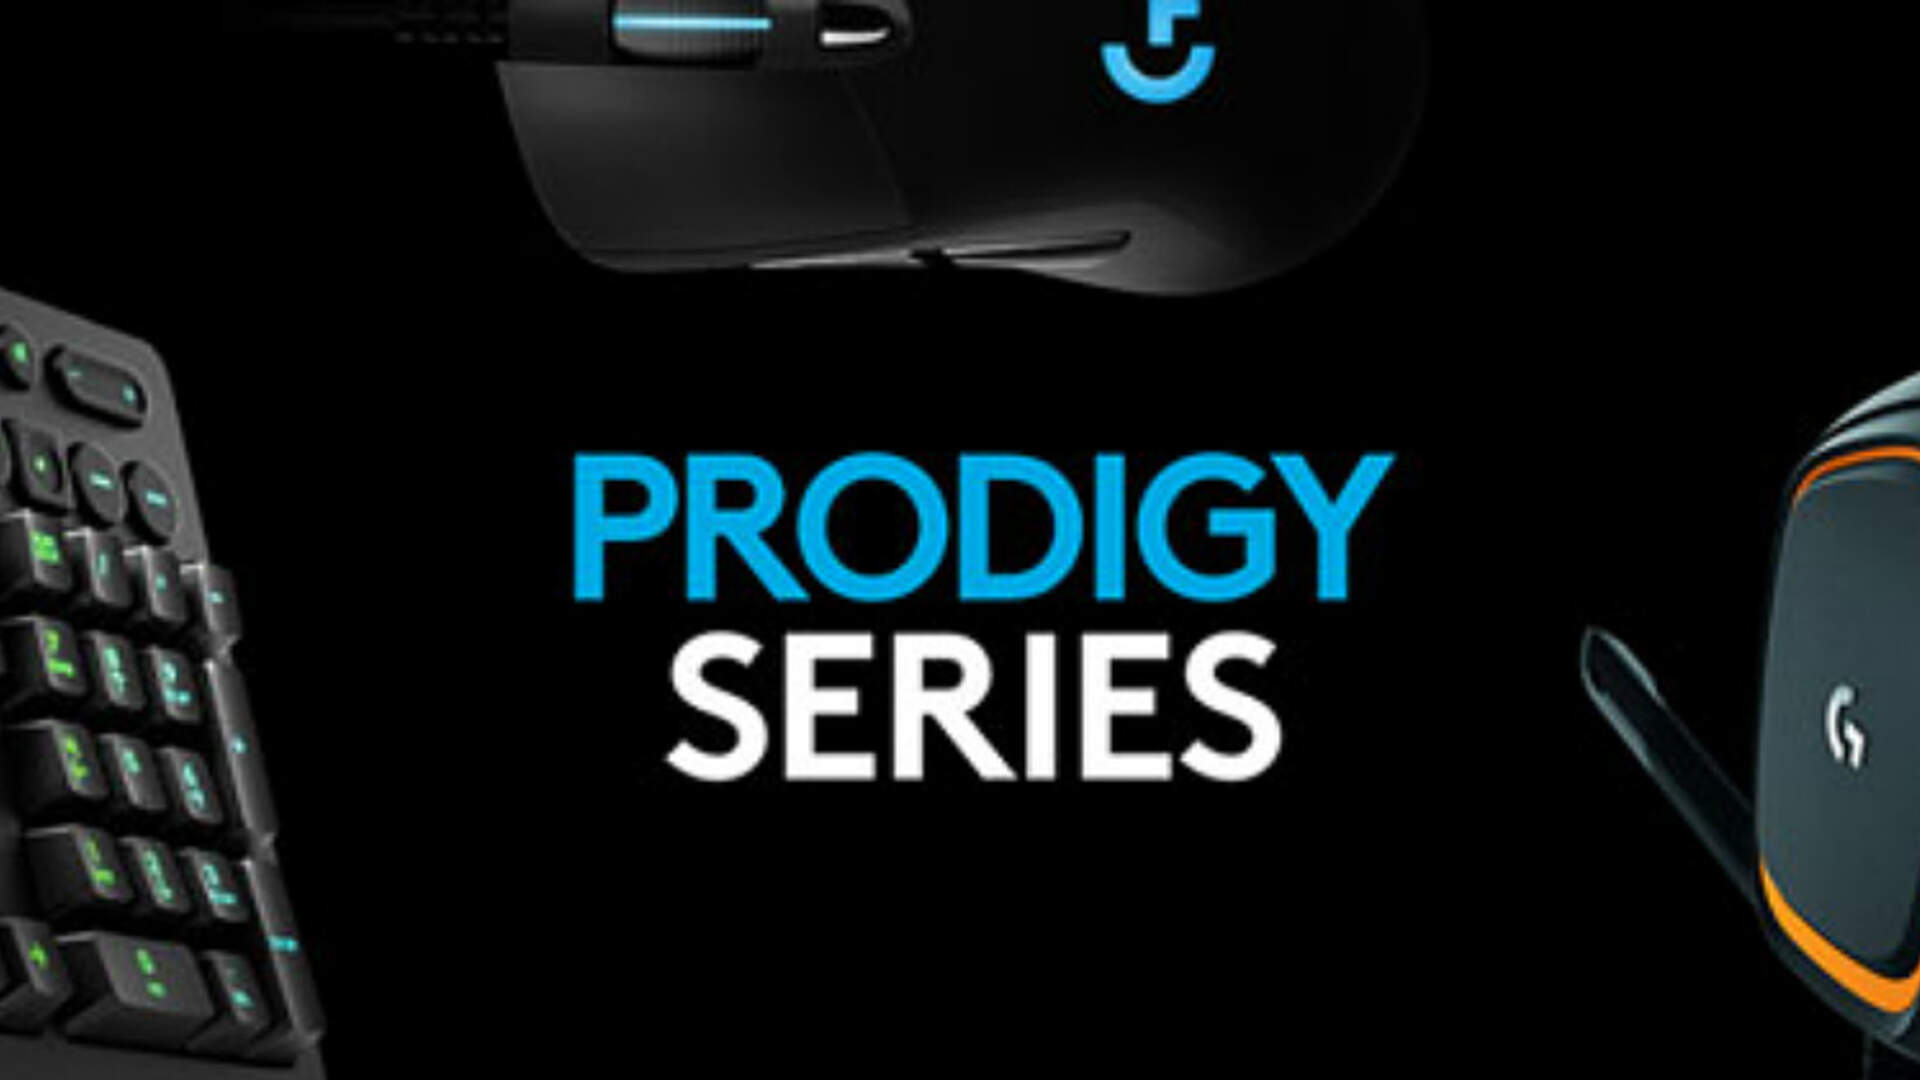 Logitech Prodigy Series Review: Good Enough For Non-Gamers